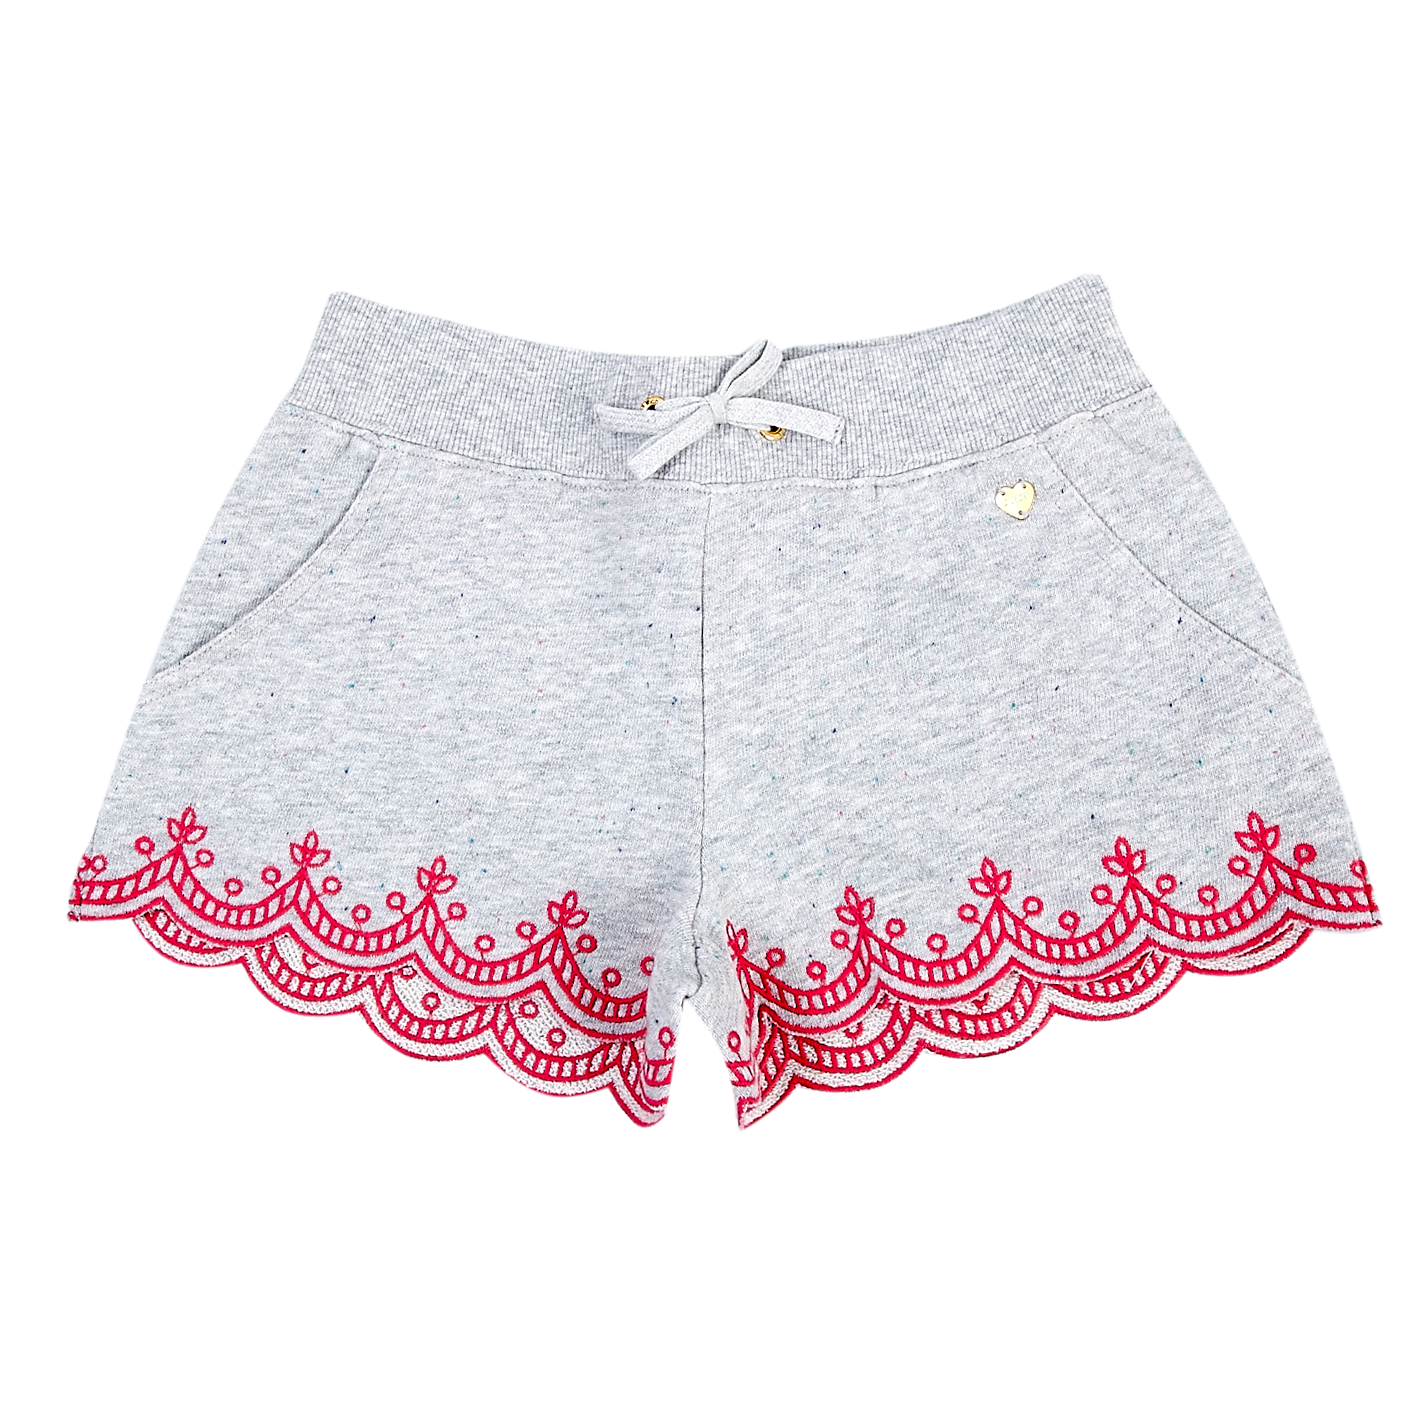 324a492522d JUICY COUTURE KIDS - Παιδικό σορτς Juicy Couture γκρι